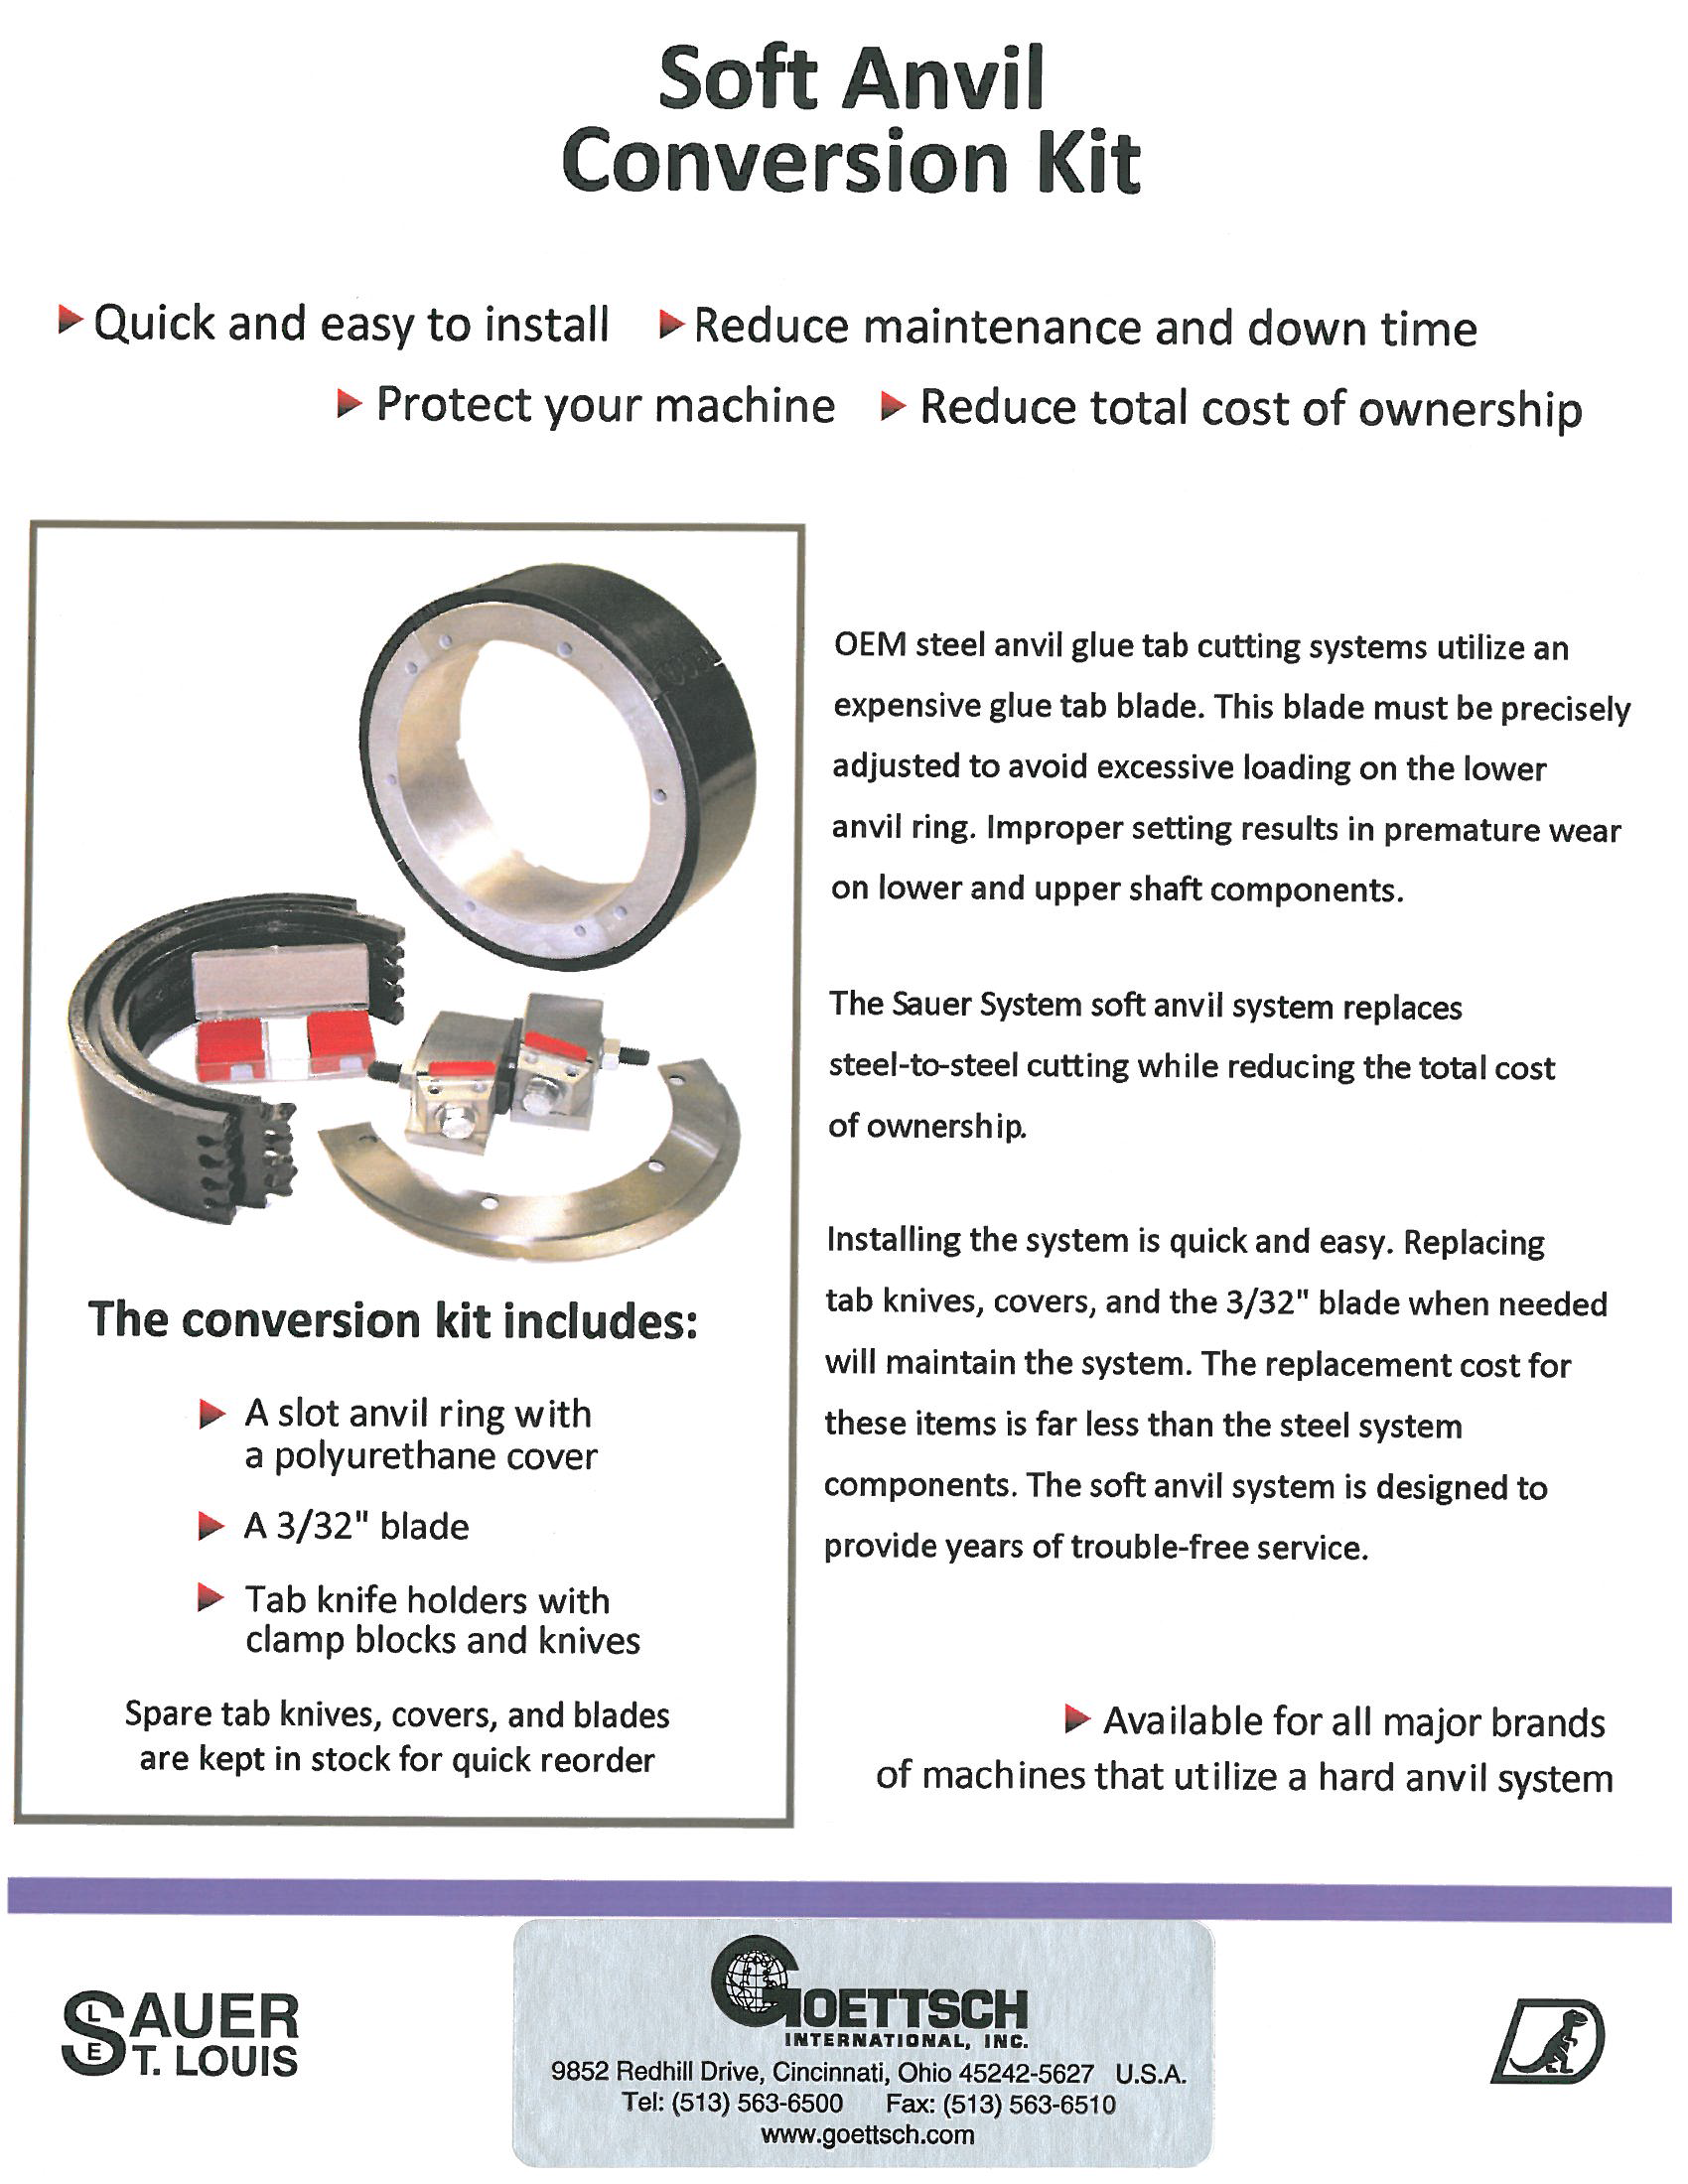 Learn more about the Soft Anvil Conversion Kit and Stitch Tab Knives in the Sauer System brochure.